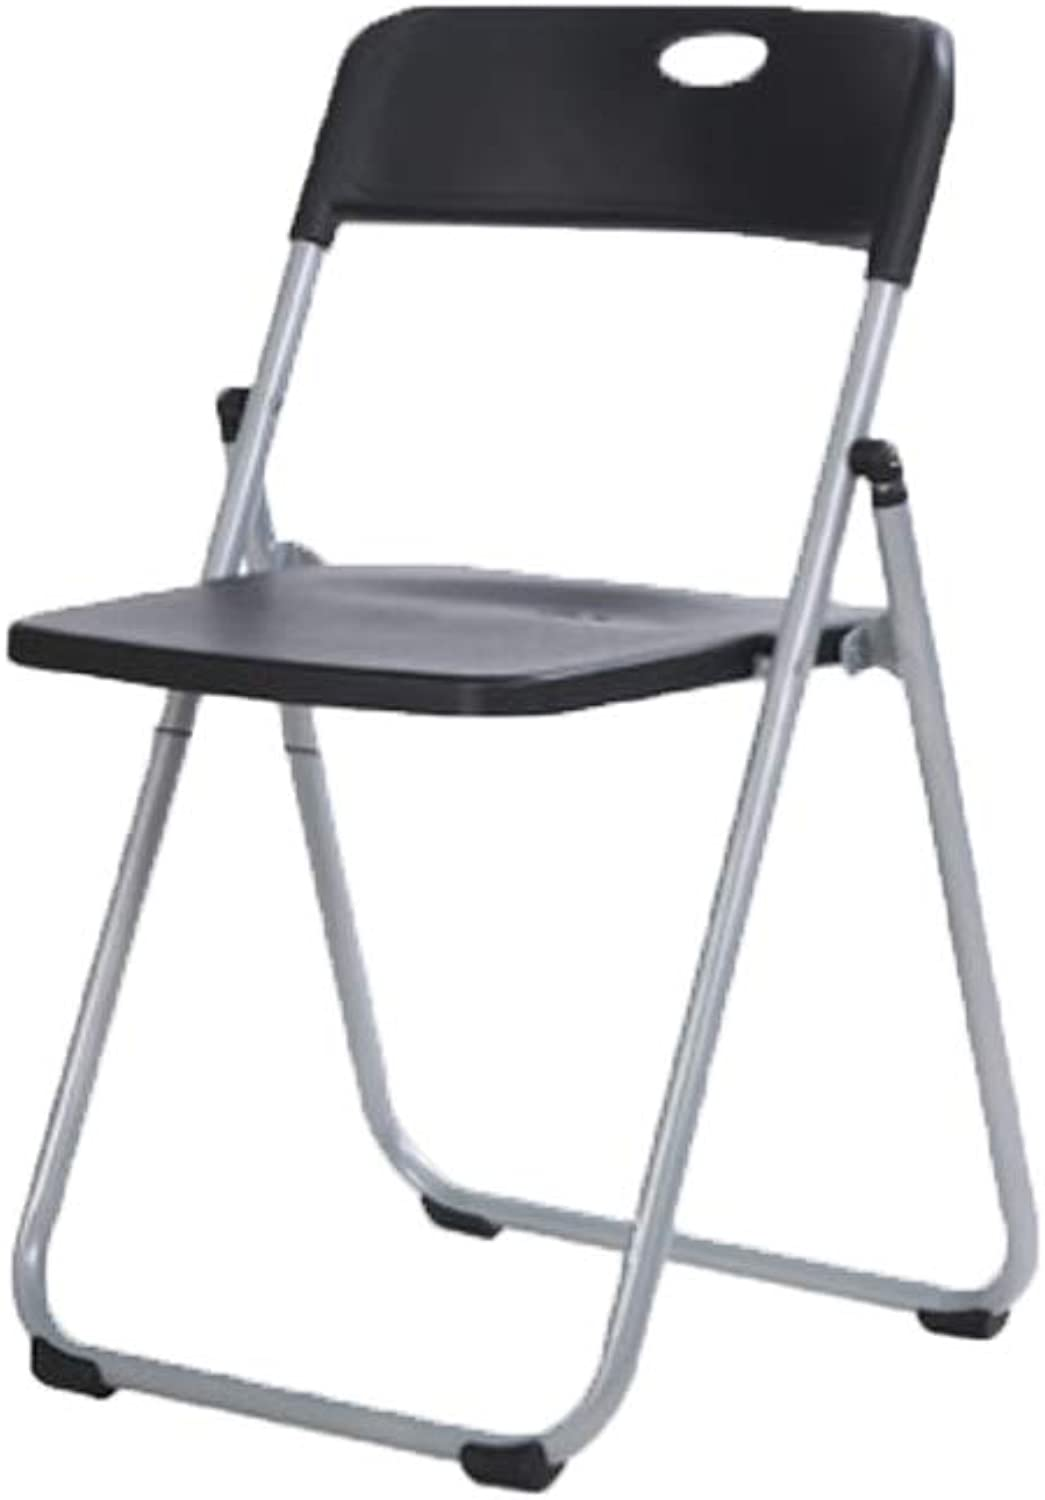 YE ZI Chair - Folding Chair - Household Portable Chair Plastic Stool Comfortable and Durable (color   Black)